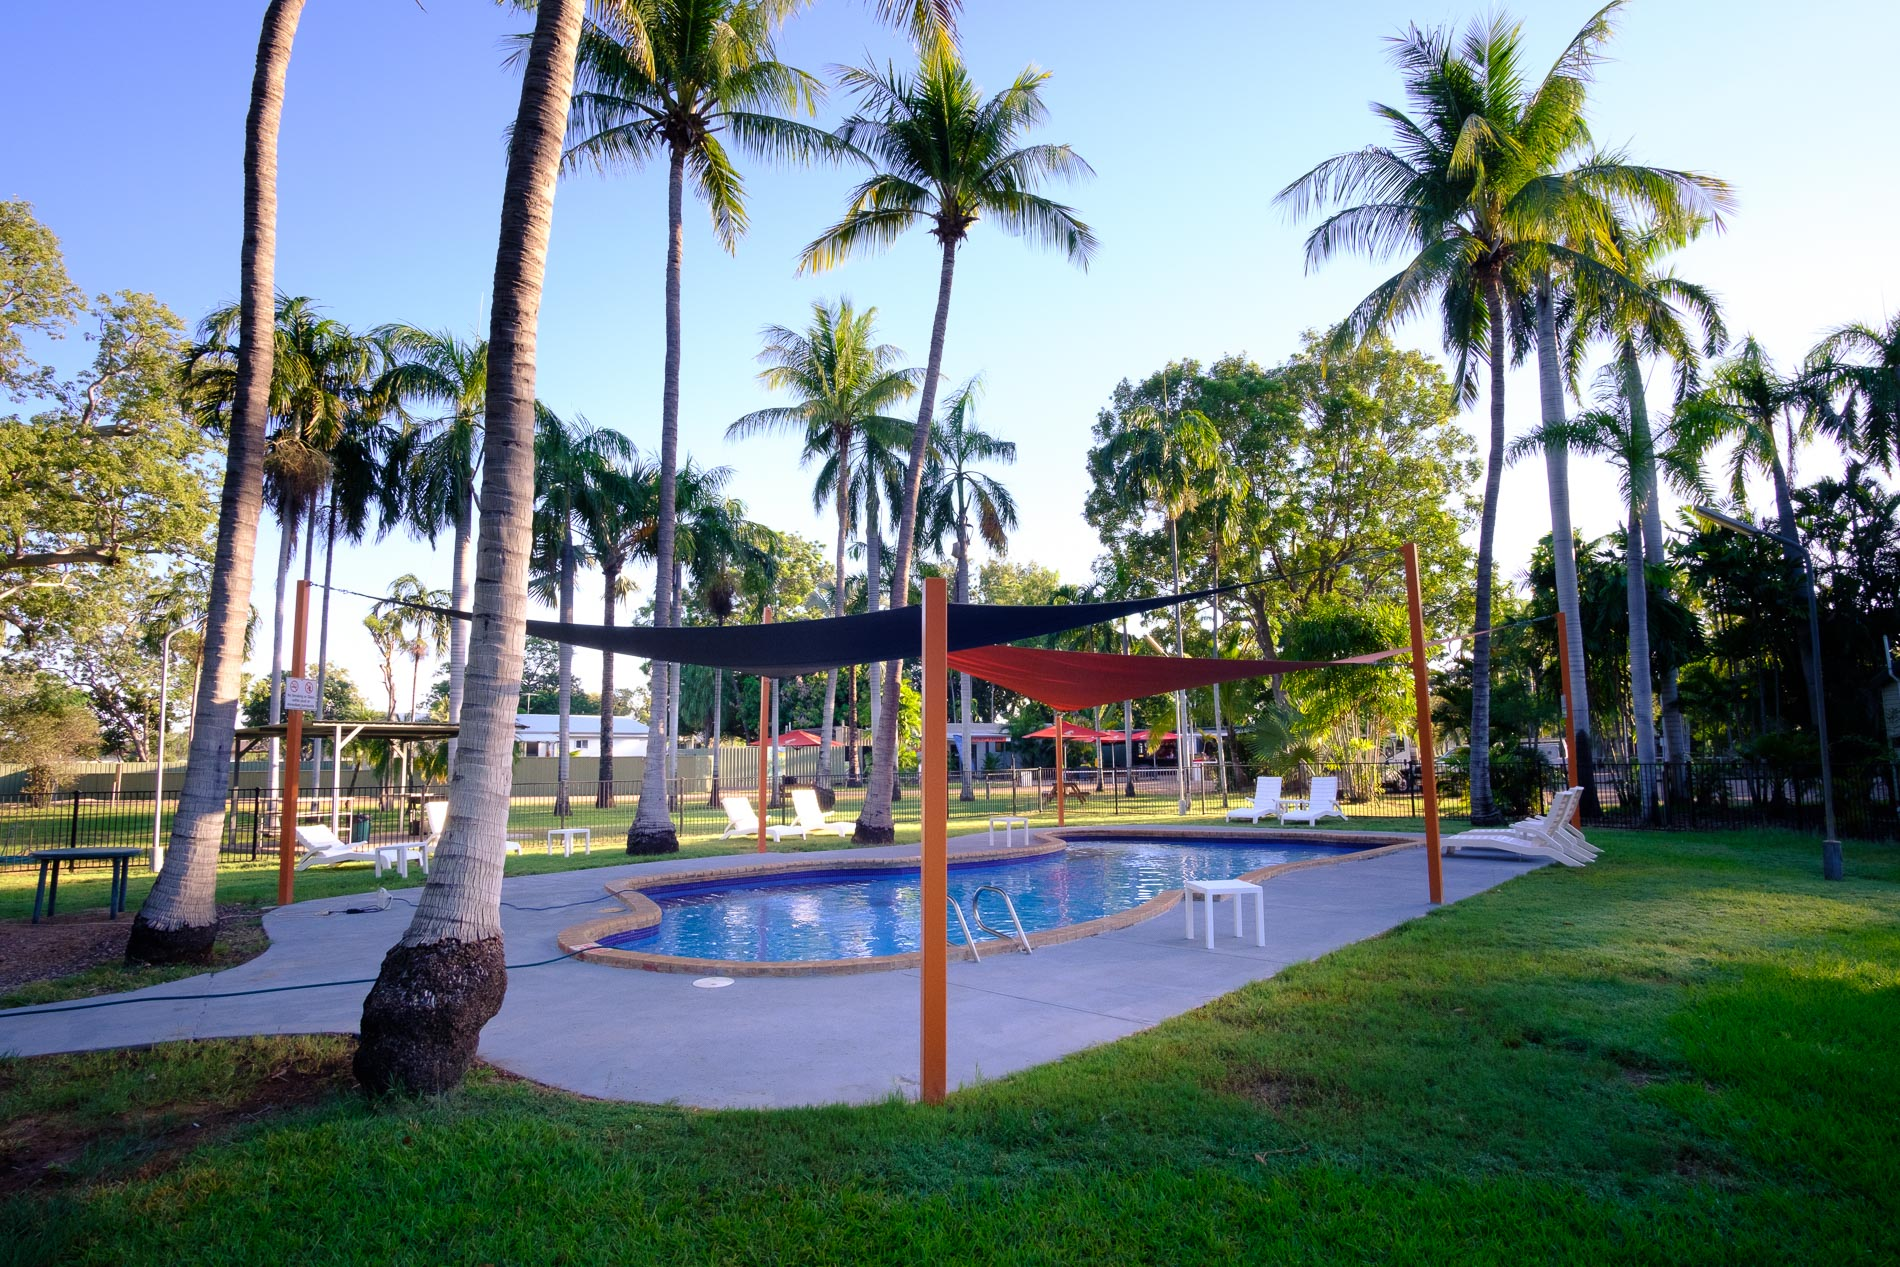 Blue Coconut Palm Pool at Kimberleyland